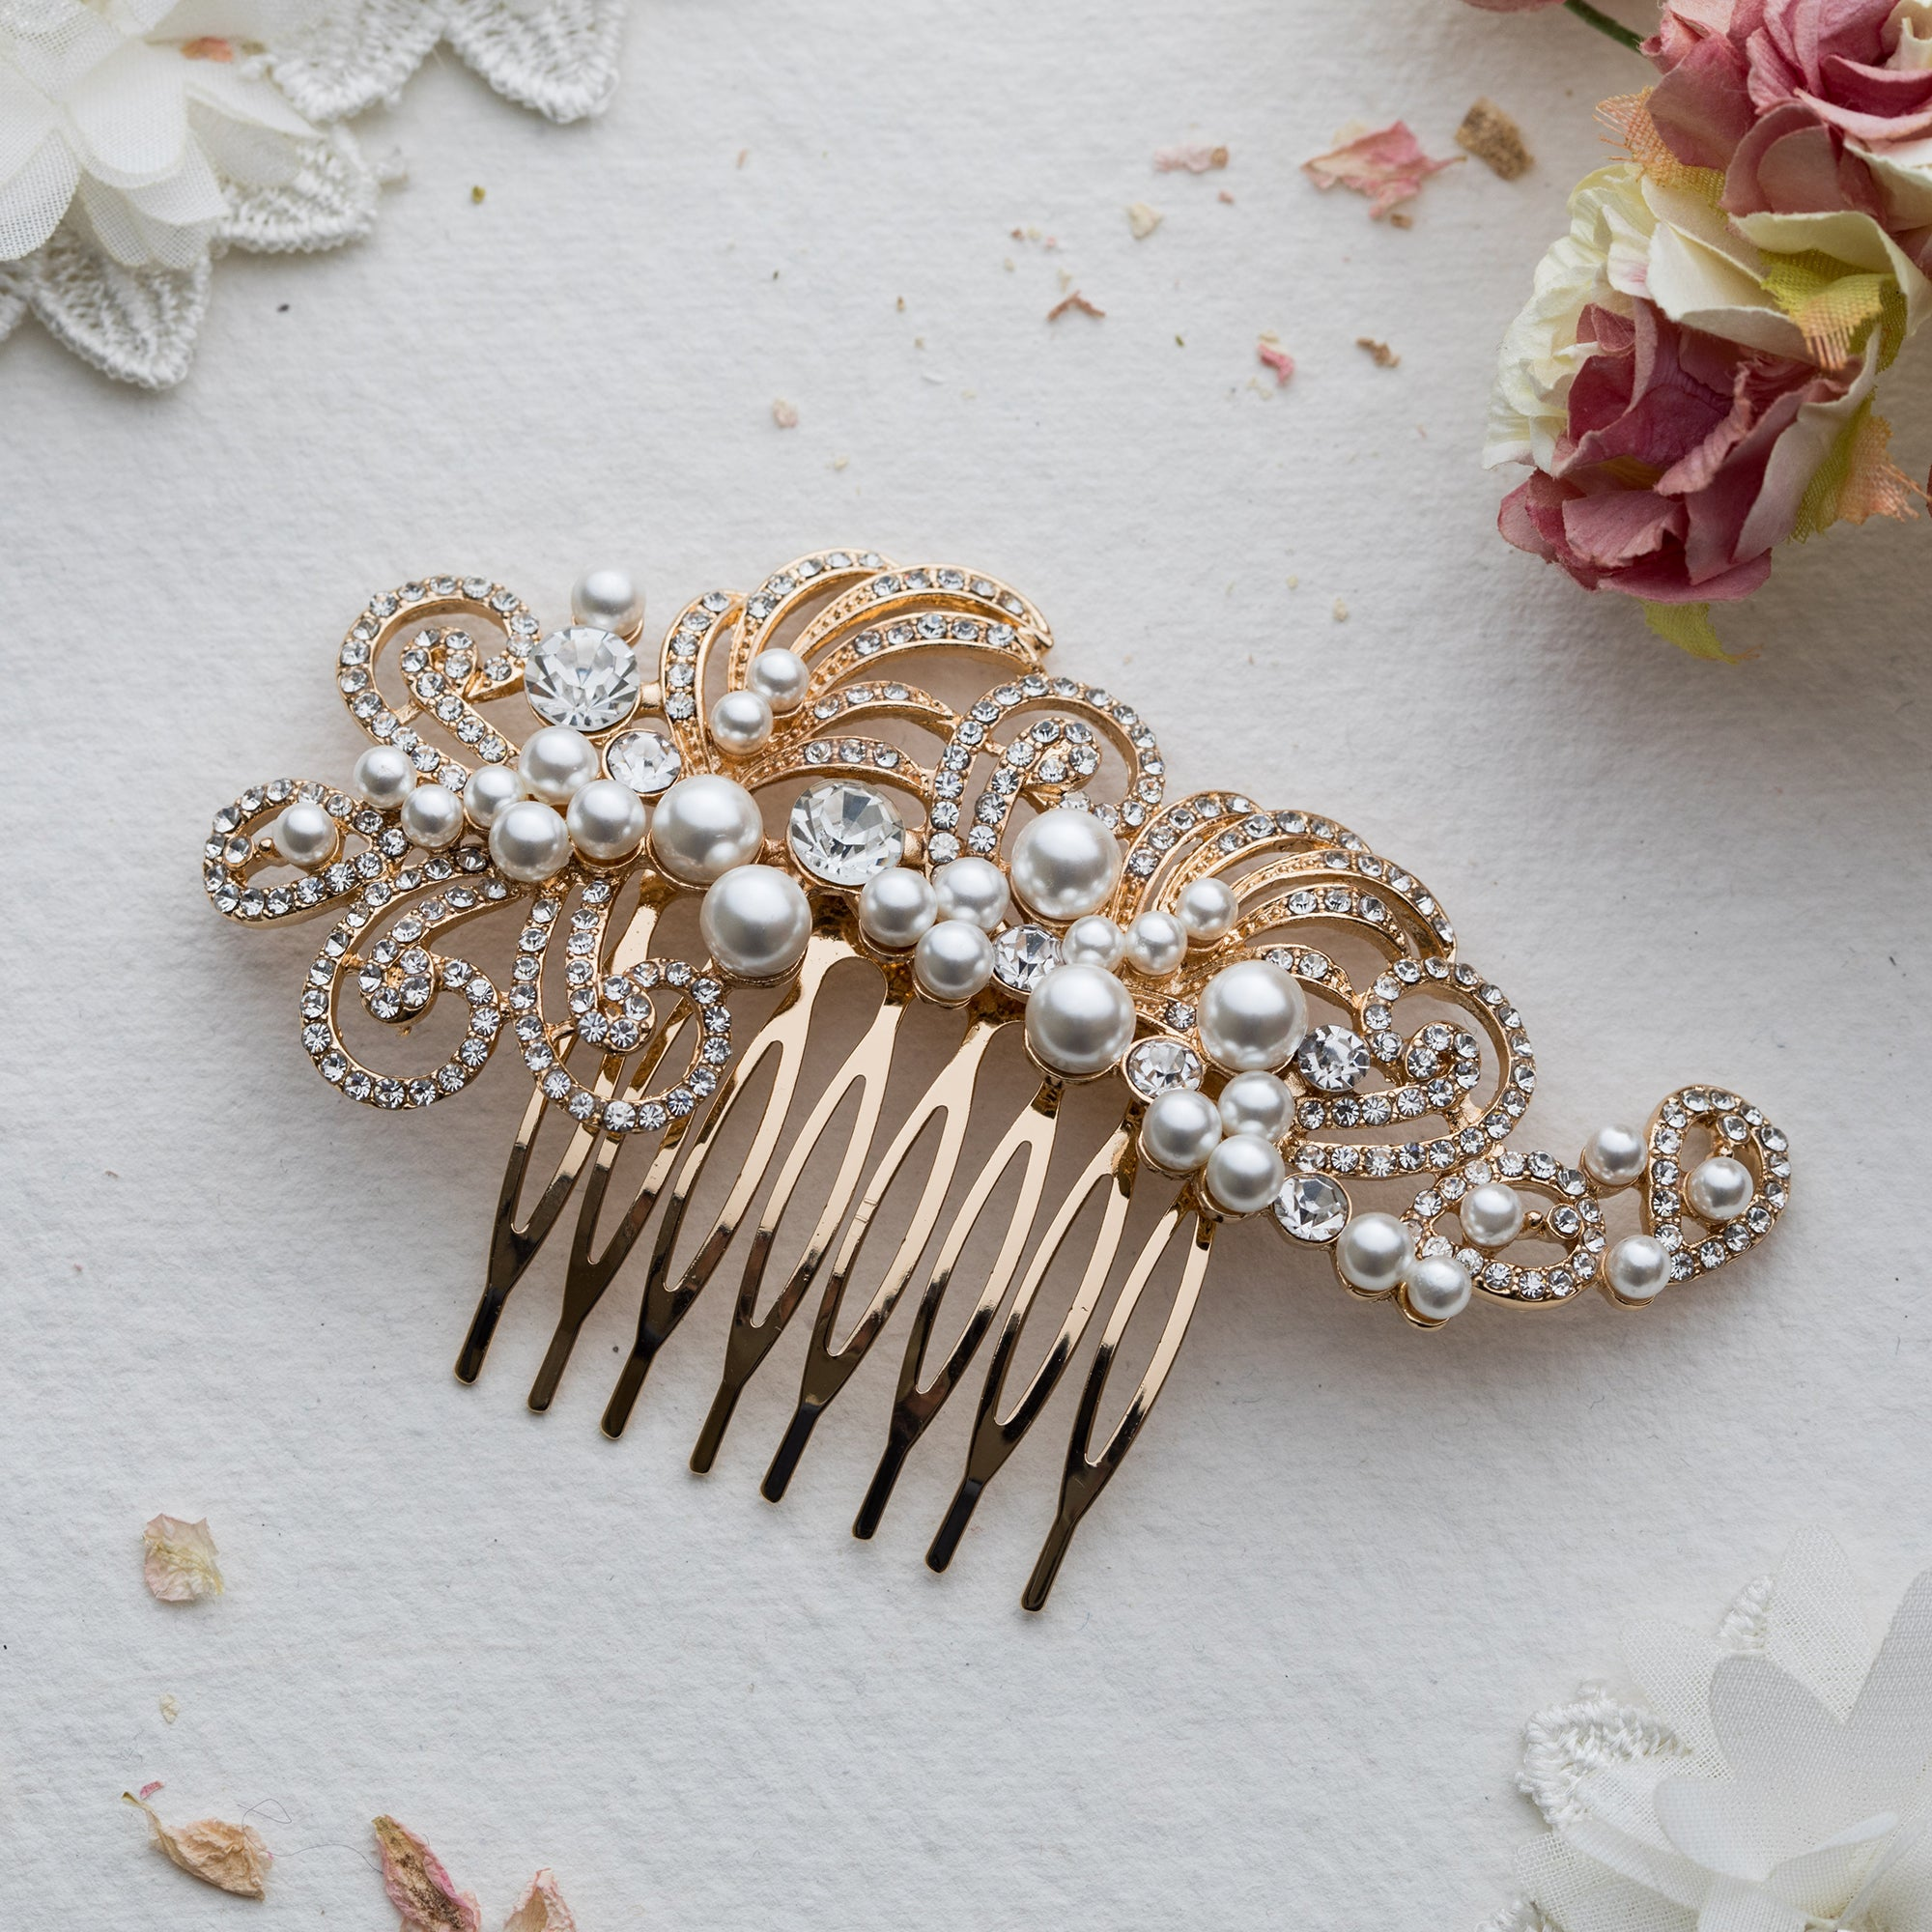 Violeta crystal and pearl gold hair comb